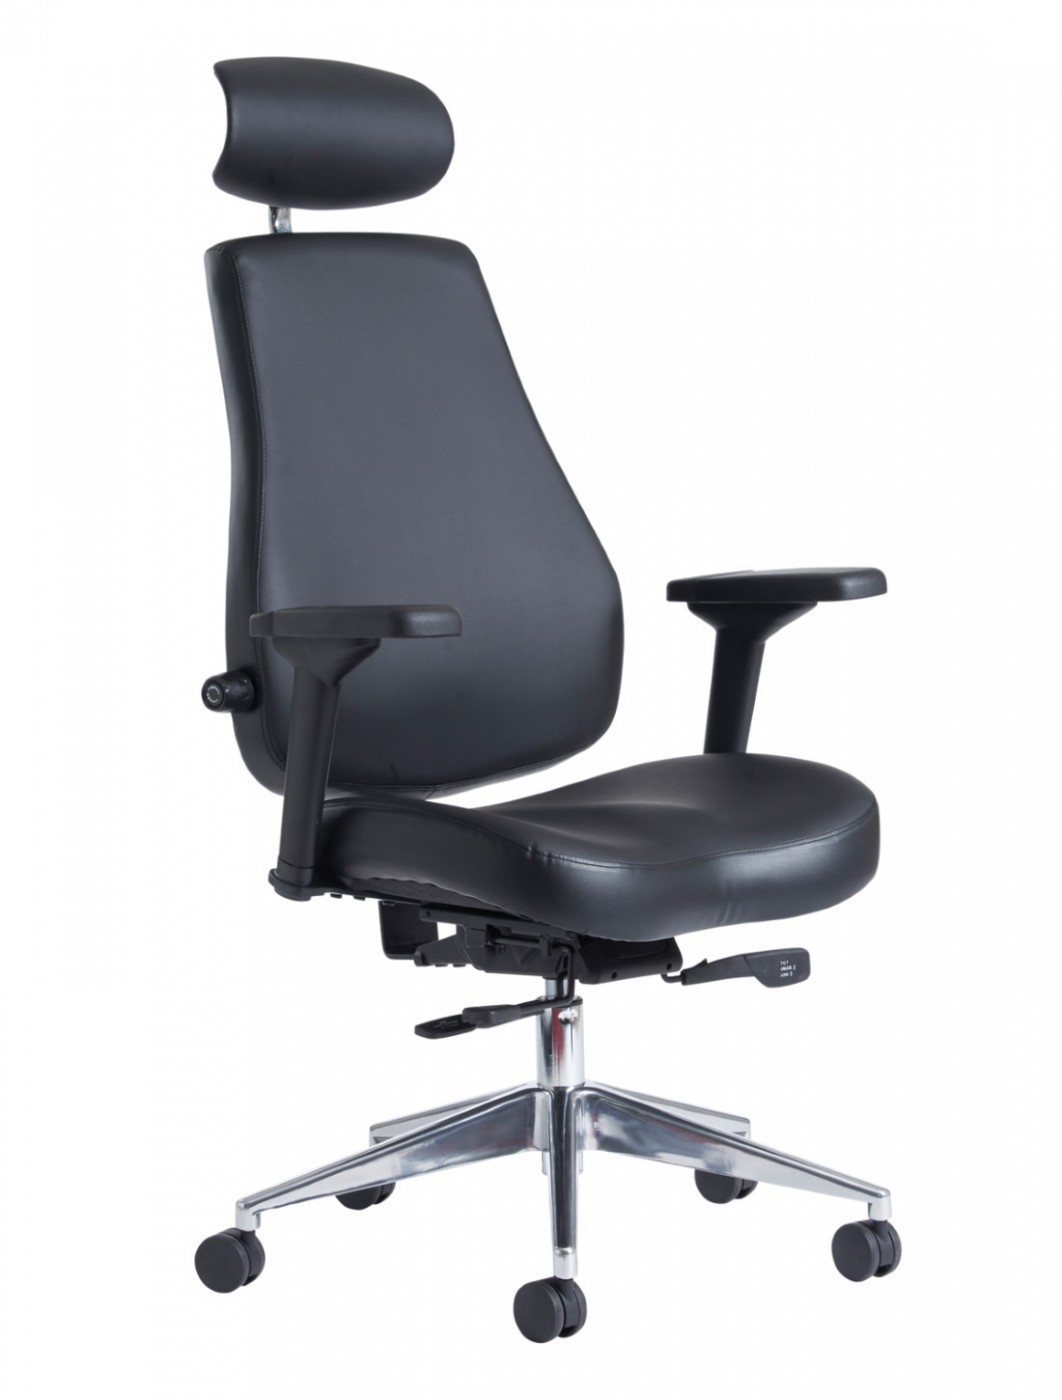 Office Chair Franklin 24 Hour Task Chair Fra400k2 By Dams 121 Office Furniture